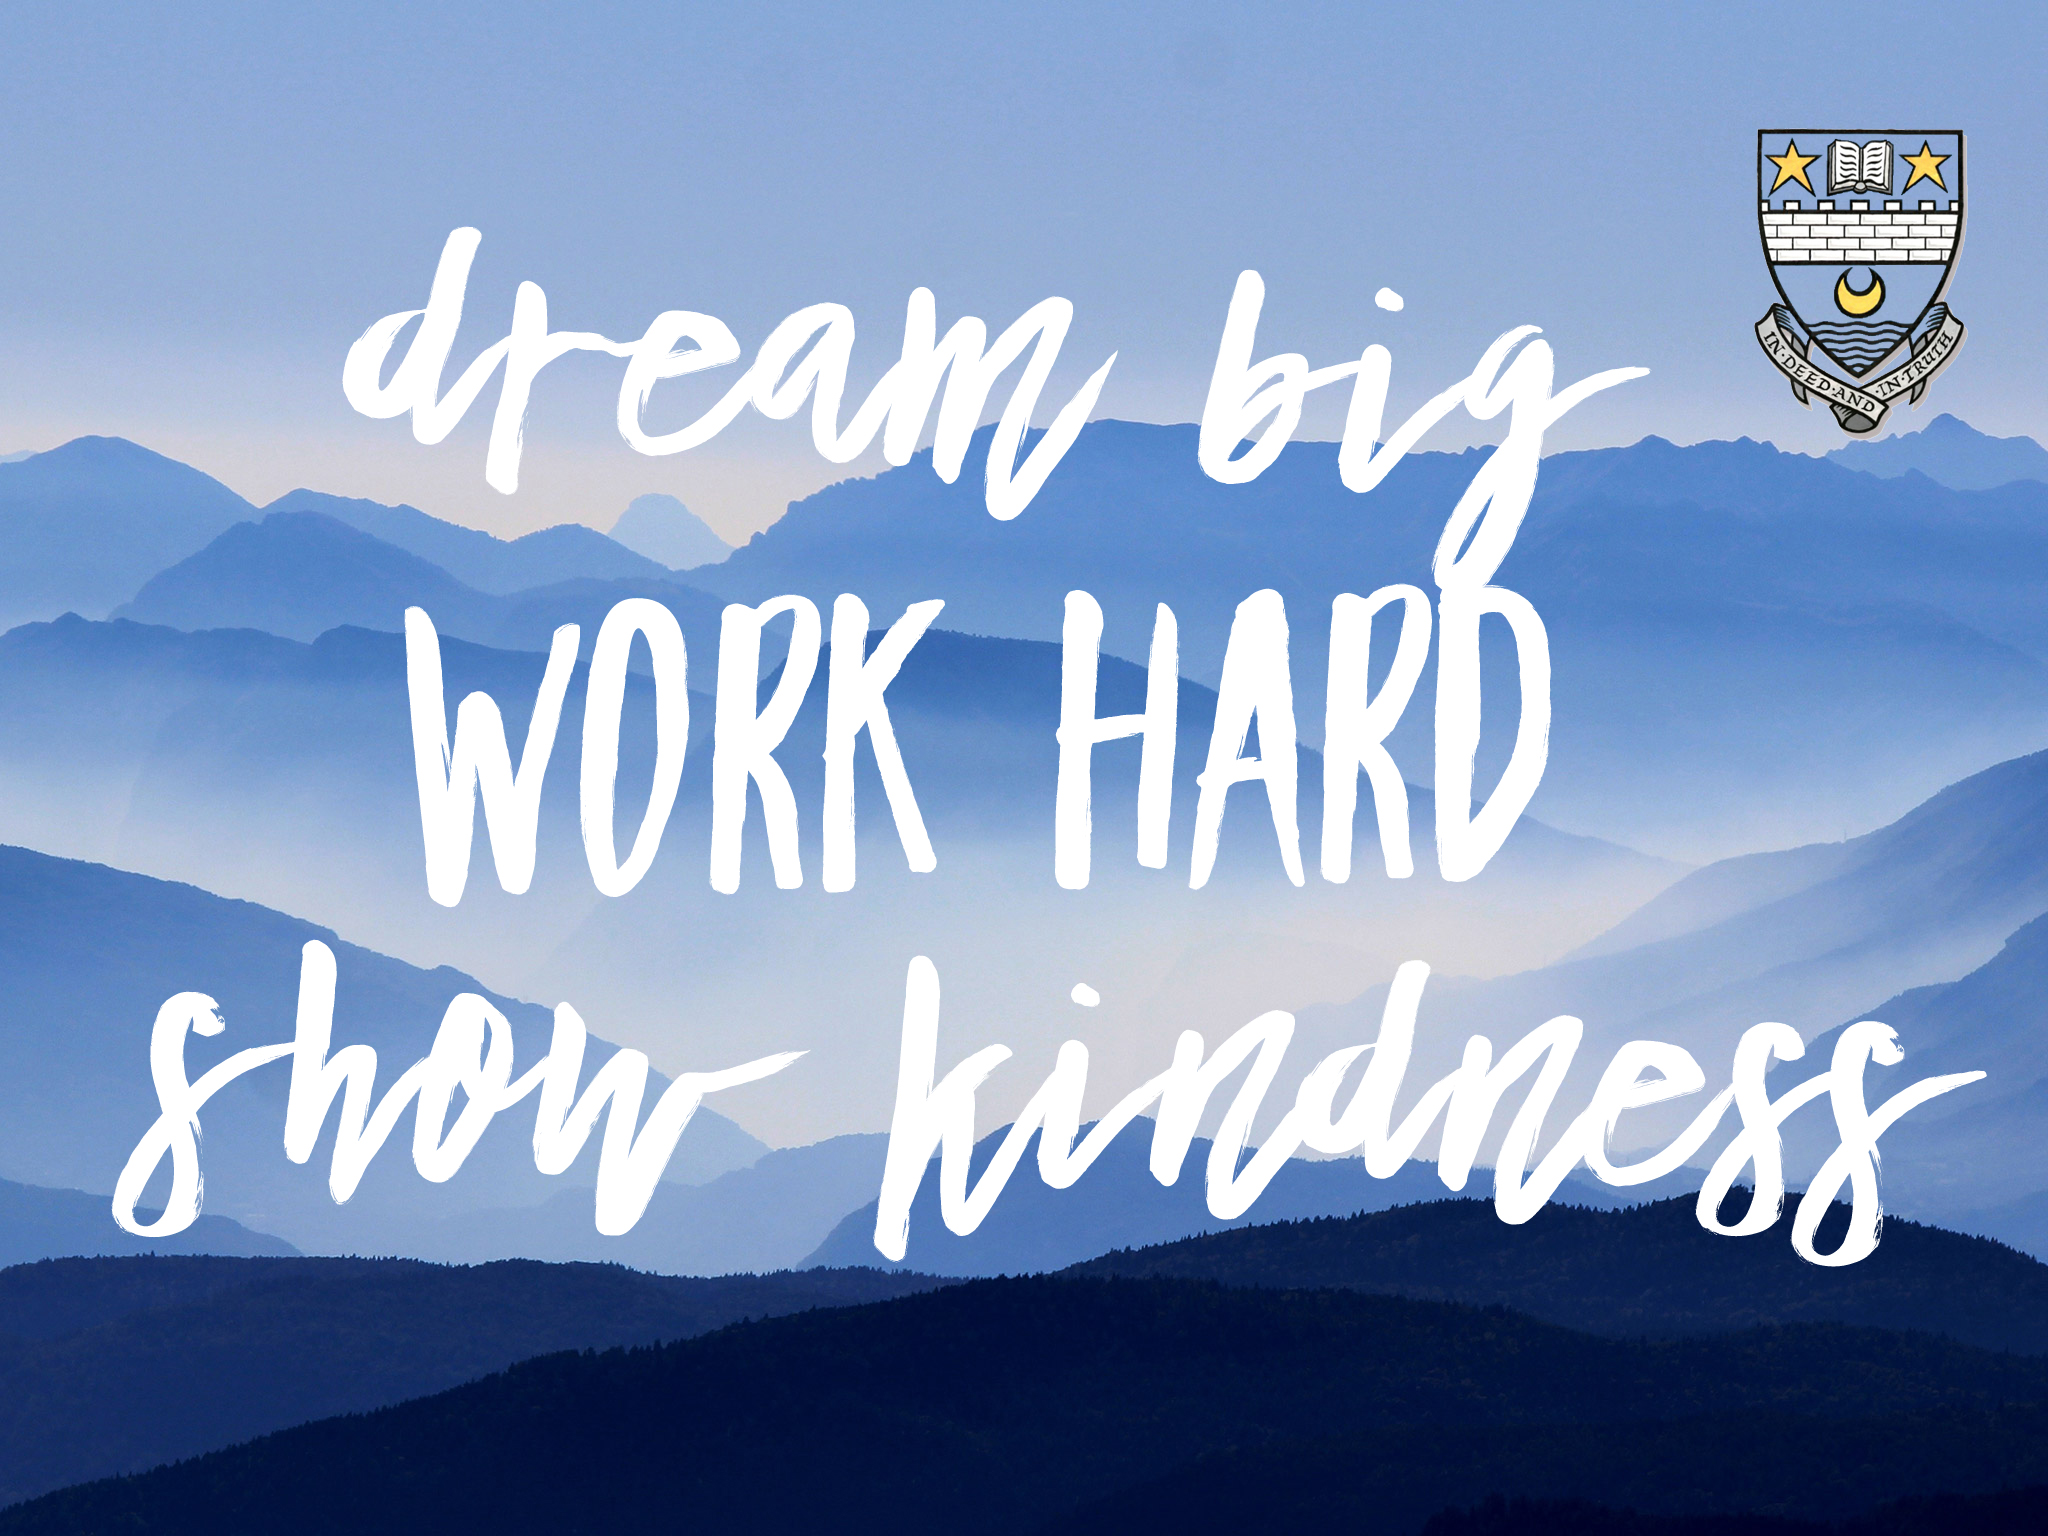 image with wording dream big, work hard and show kindness